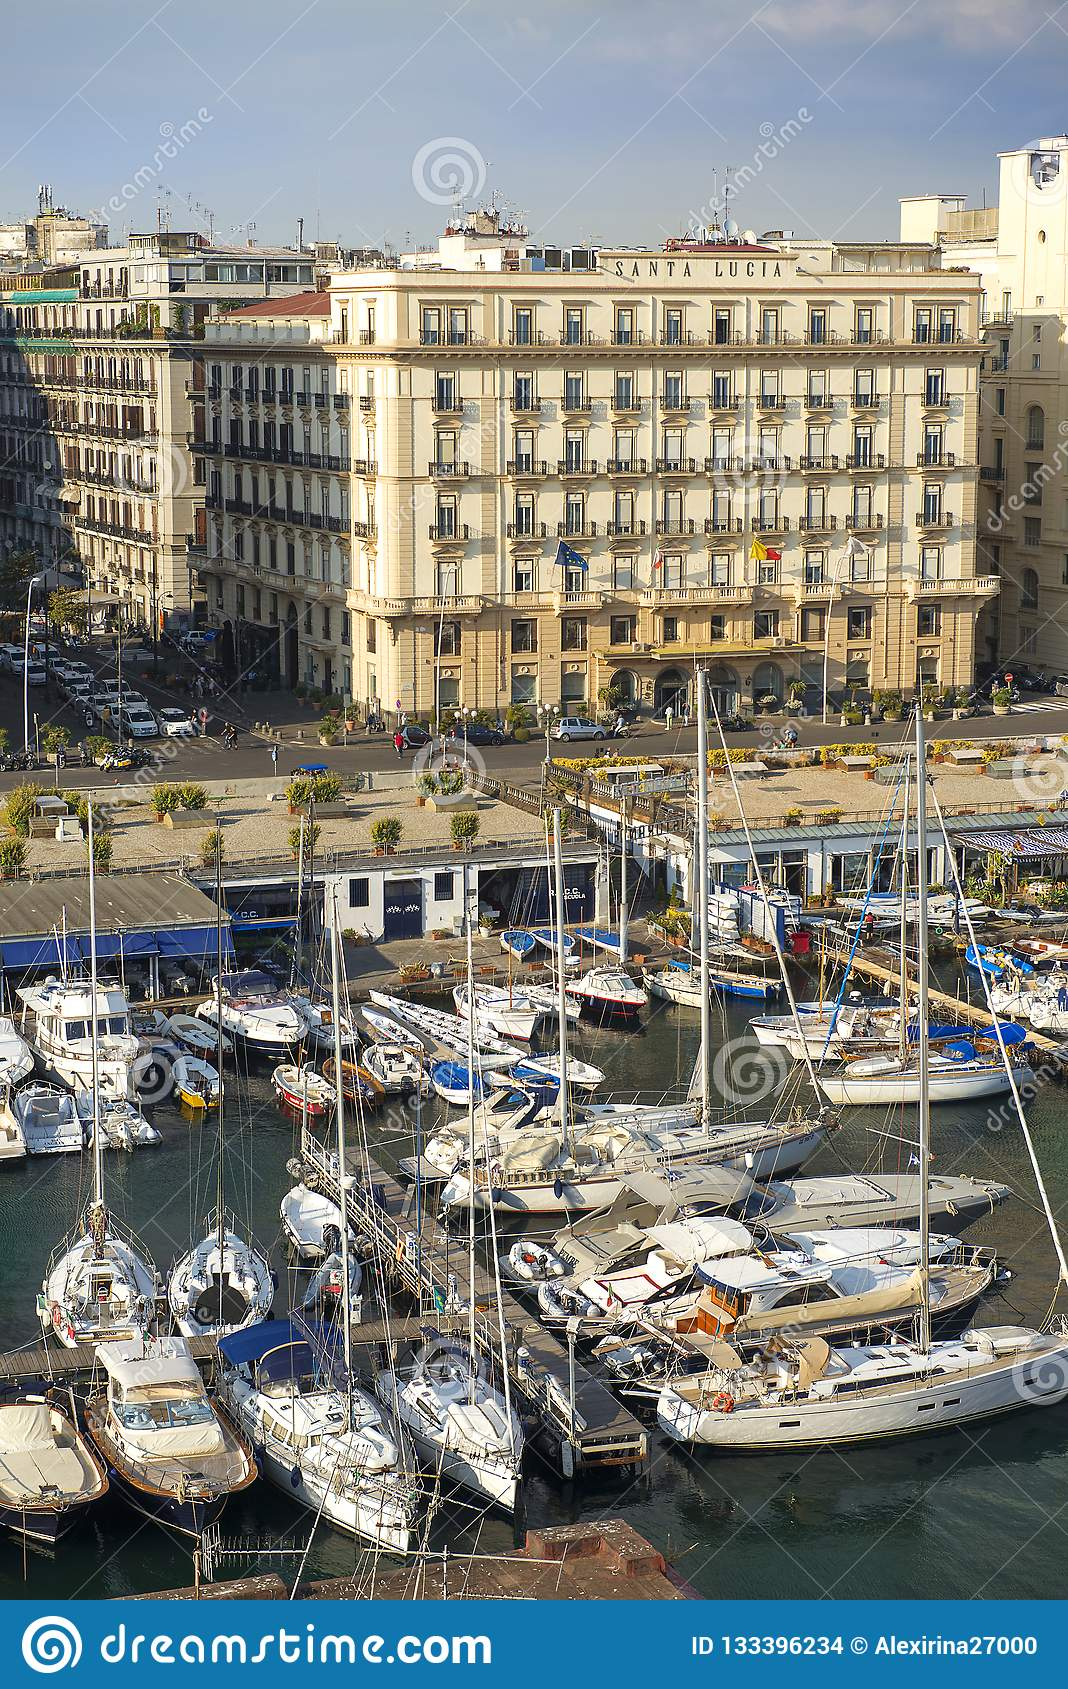 Marina Of Naples And Grand Hotel Santa Lucia Naples Italy Editorial Stock Image Image Of Fort Grand 133396234